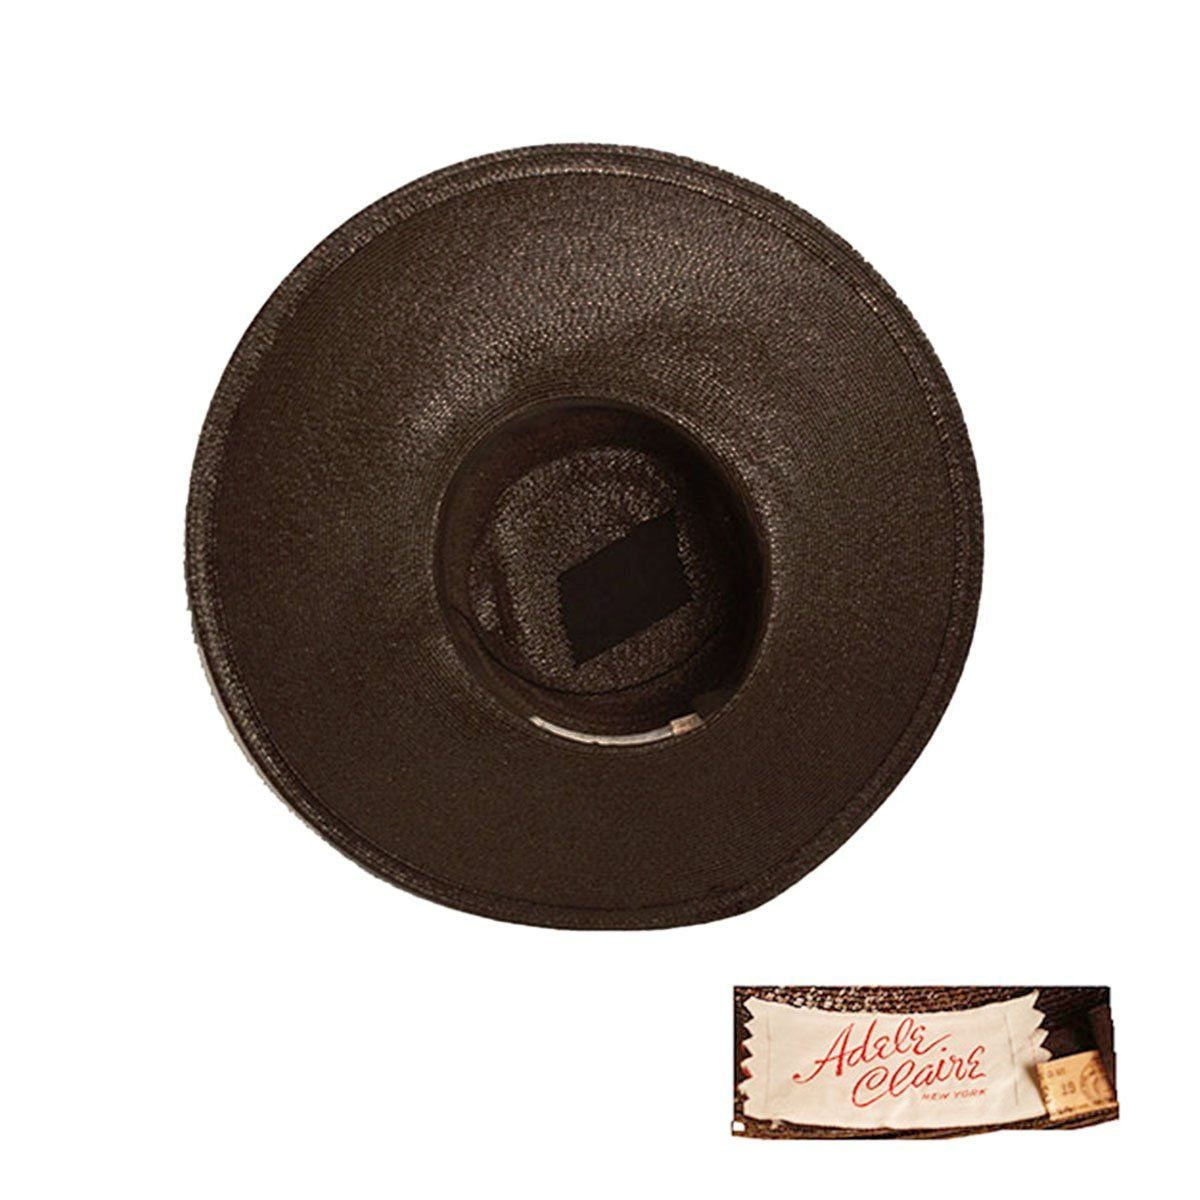 adele claire hat label